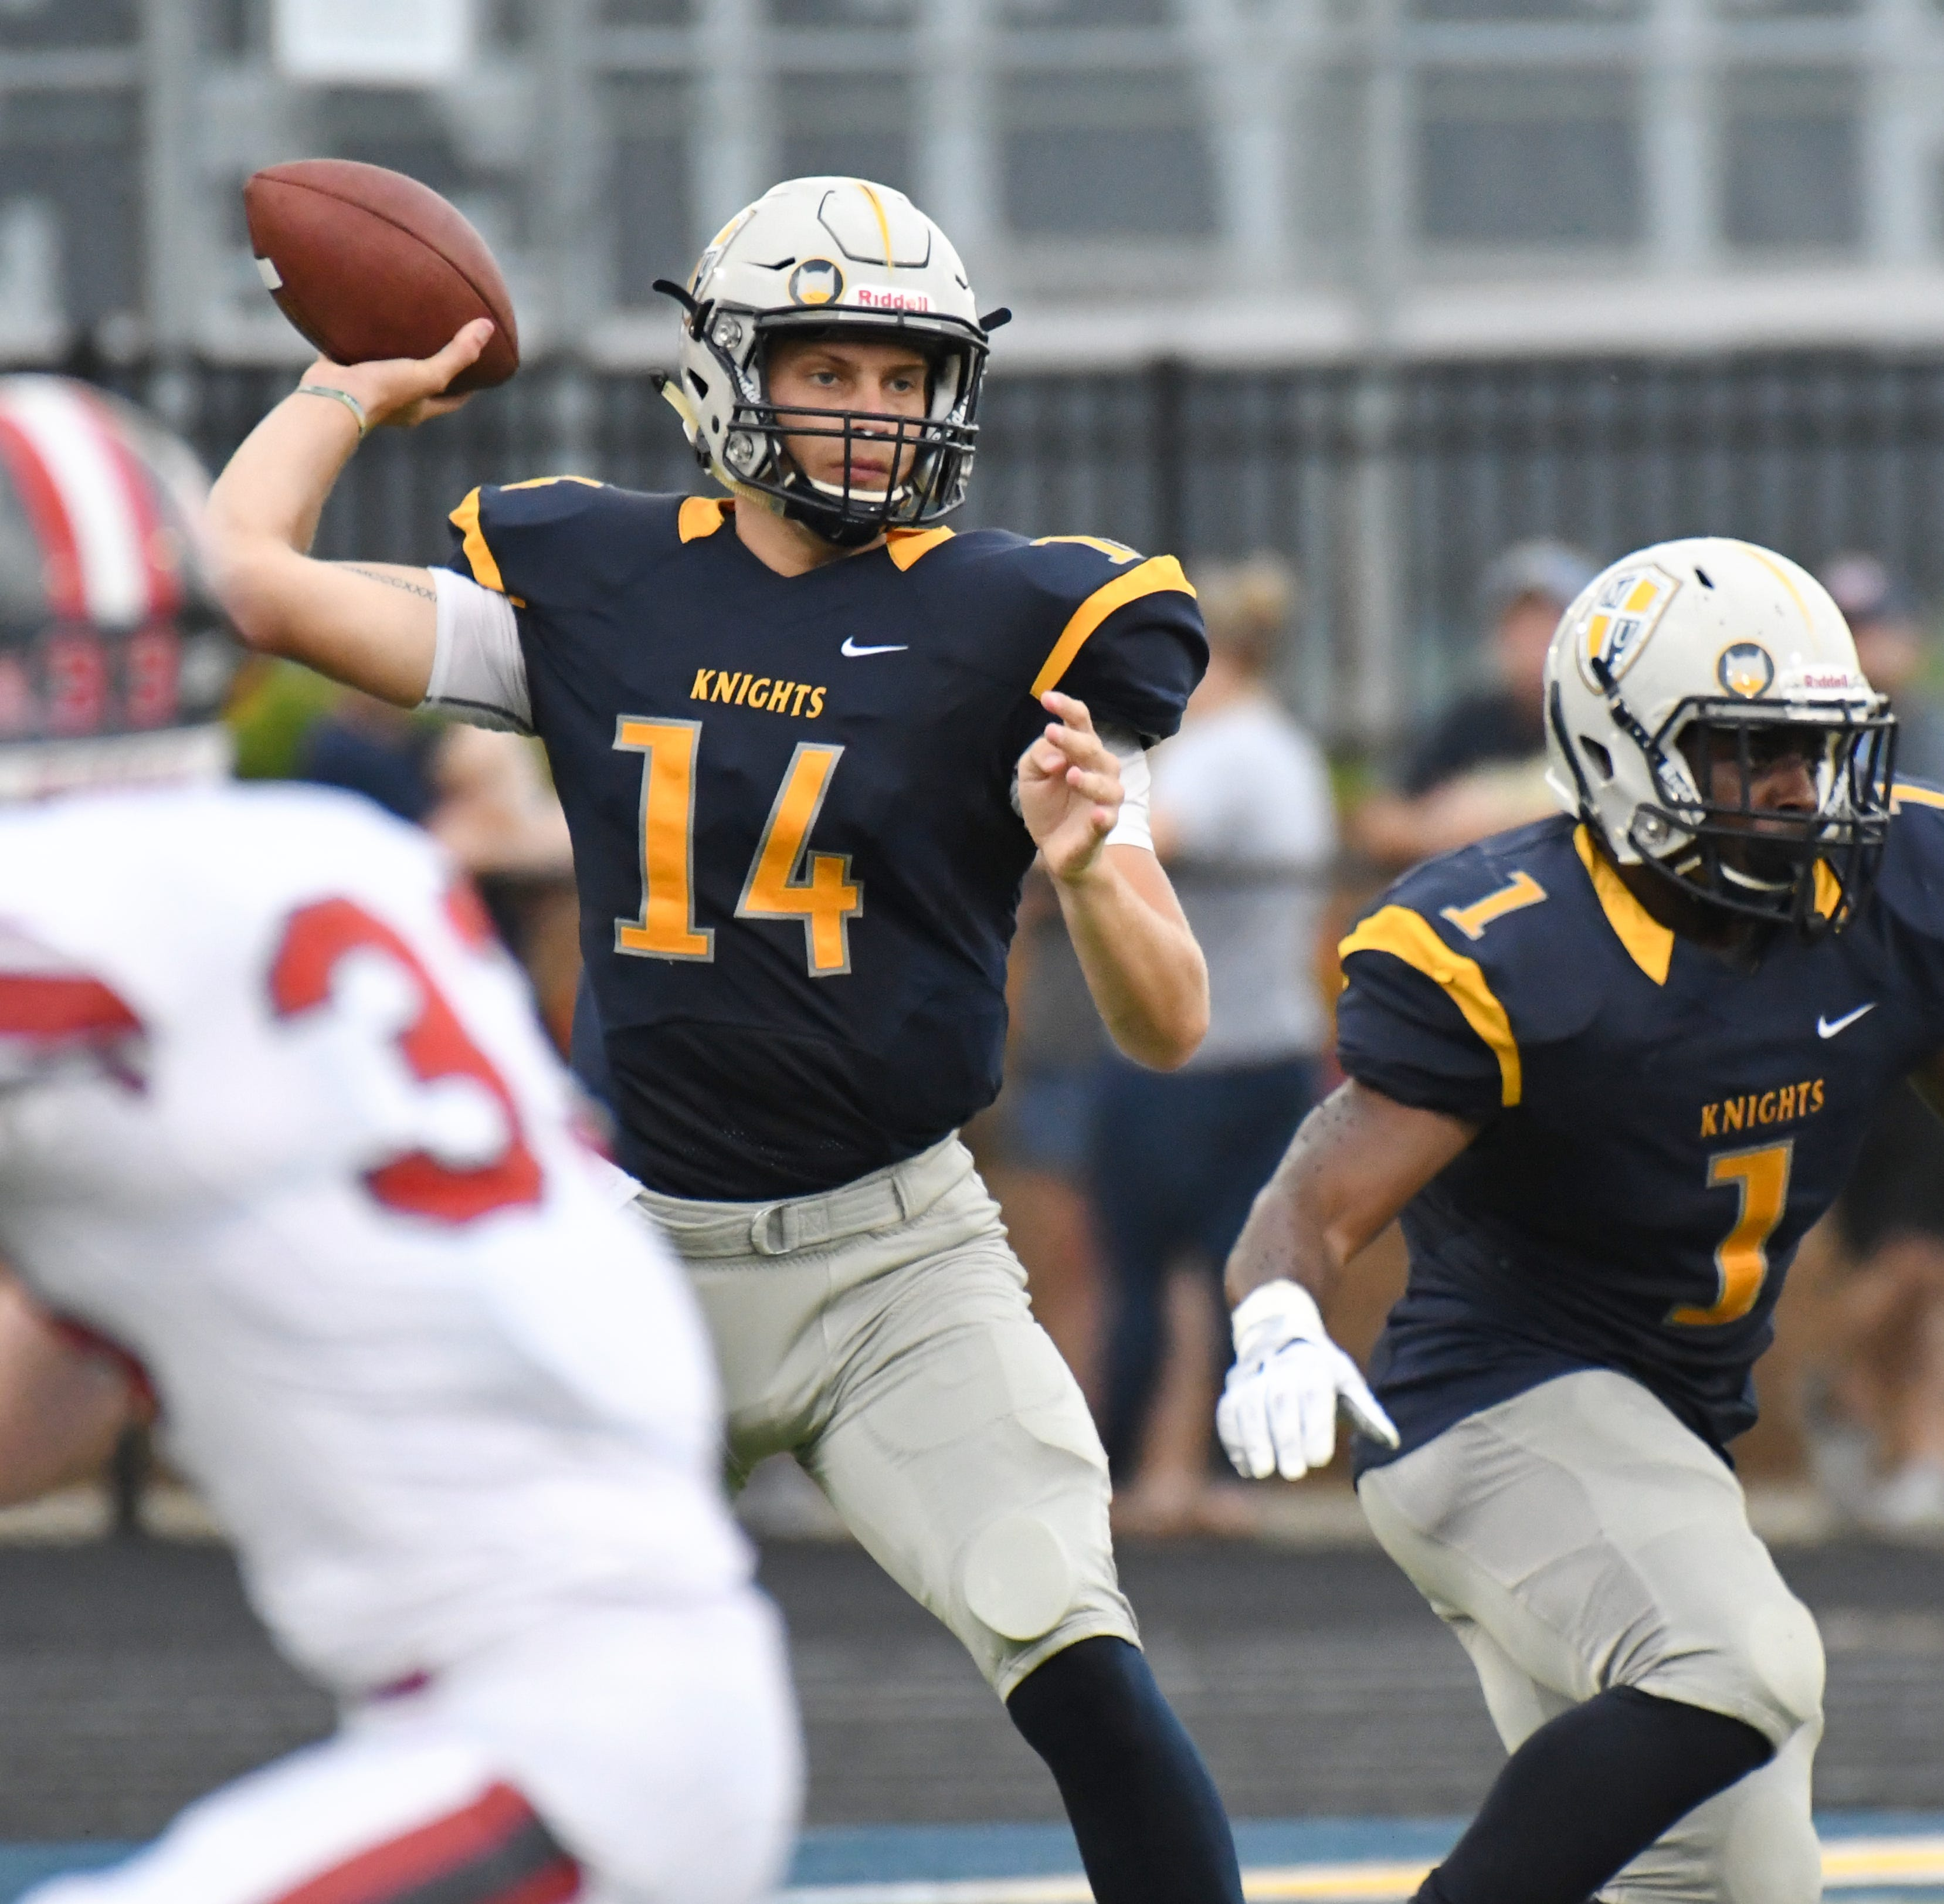 Marian University quarterback Luke Johnston winds up to pass.